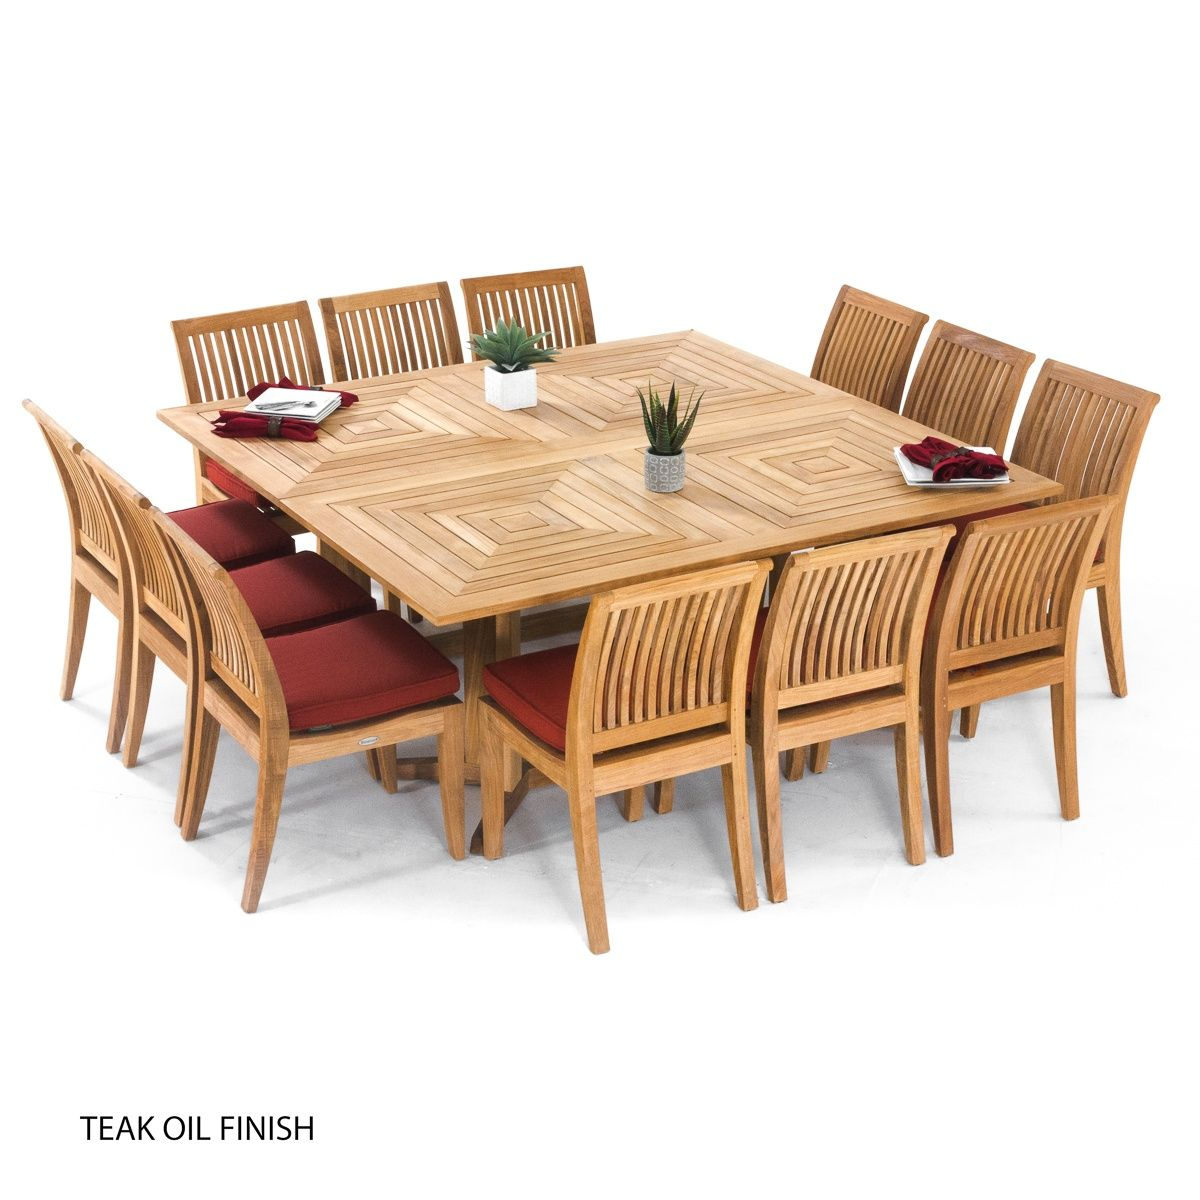 Large Teak Dining Set For 12 People Westminster Teak Teak Patio Furniture Patio Dining Furniture Teak Outdoor Furniture